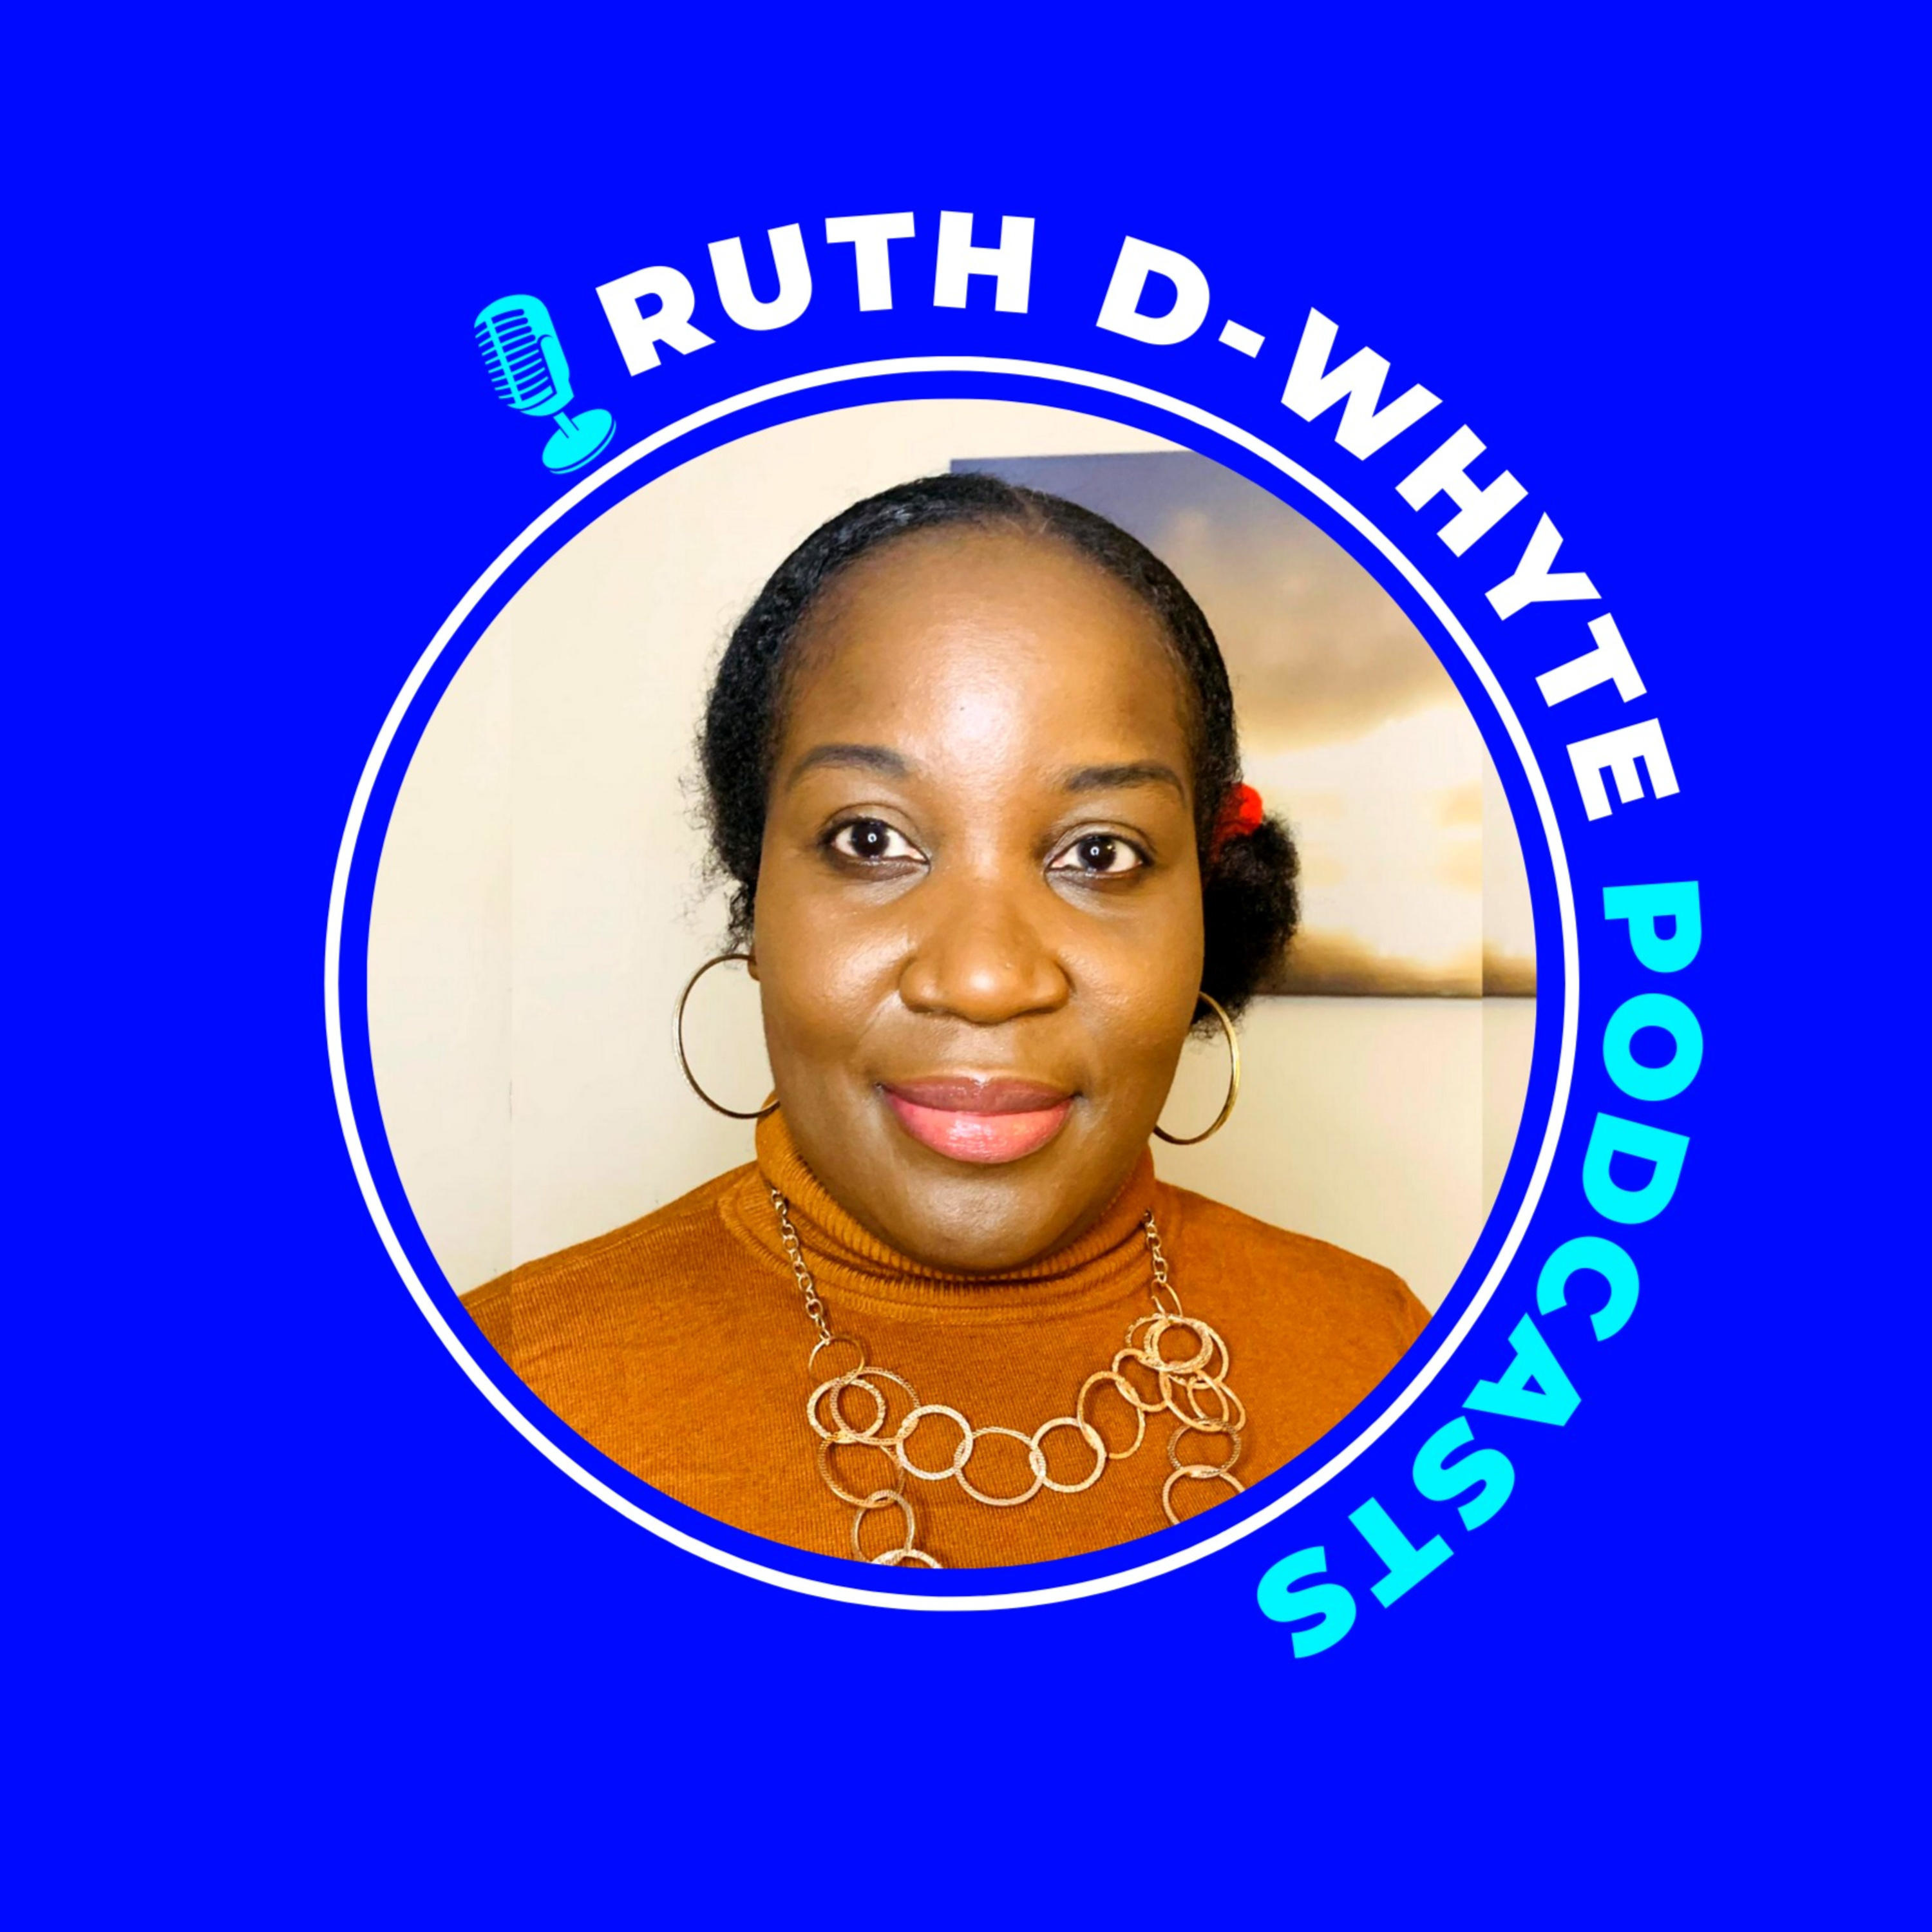 RUTH D. WHYTE PODCASTS